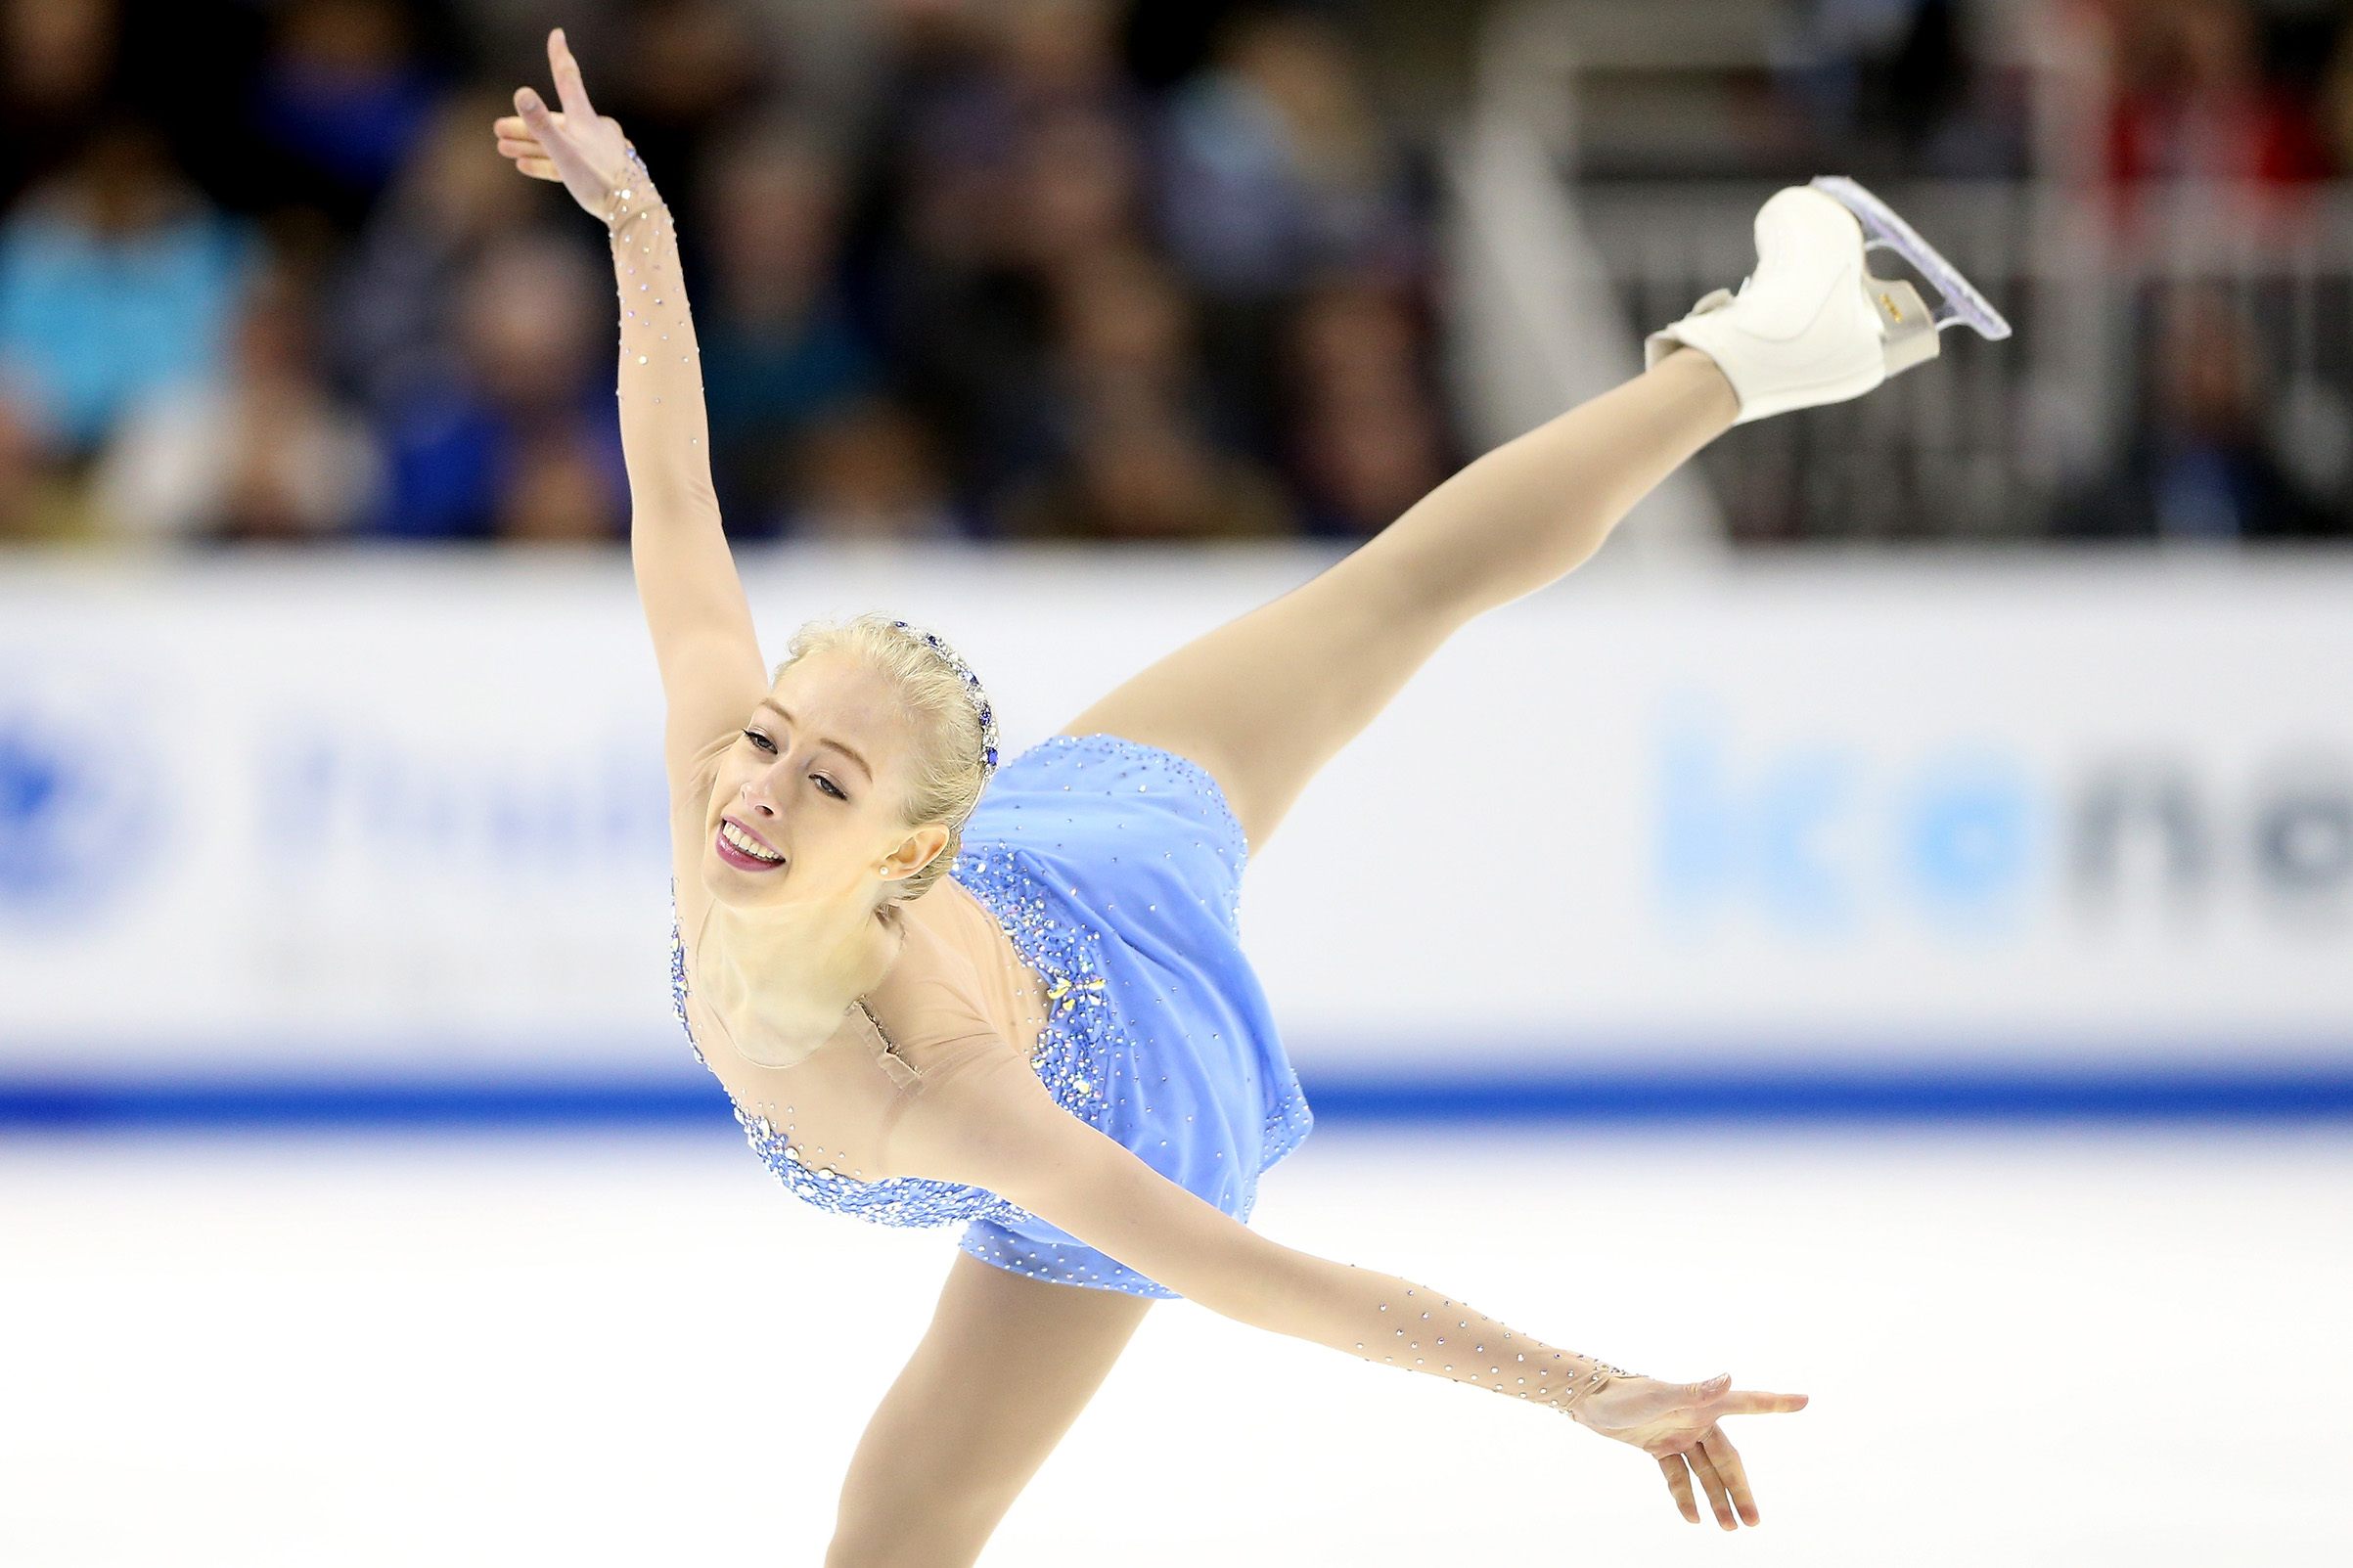 Olympic athlete Bradie Tennell competes in the Ladies Free Skate during the 2018 Prudential U.S. Figure Skating Championships at the SAP Center in San Jose, Calif. on January 5, 2018. Matthew Stockman—Getty Images